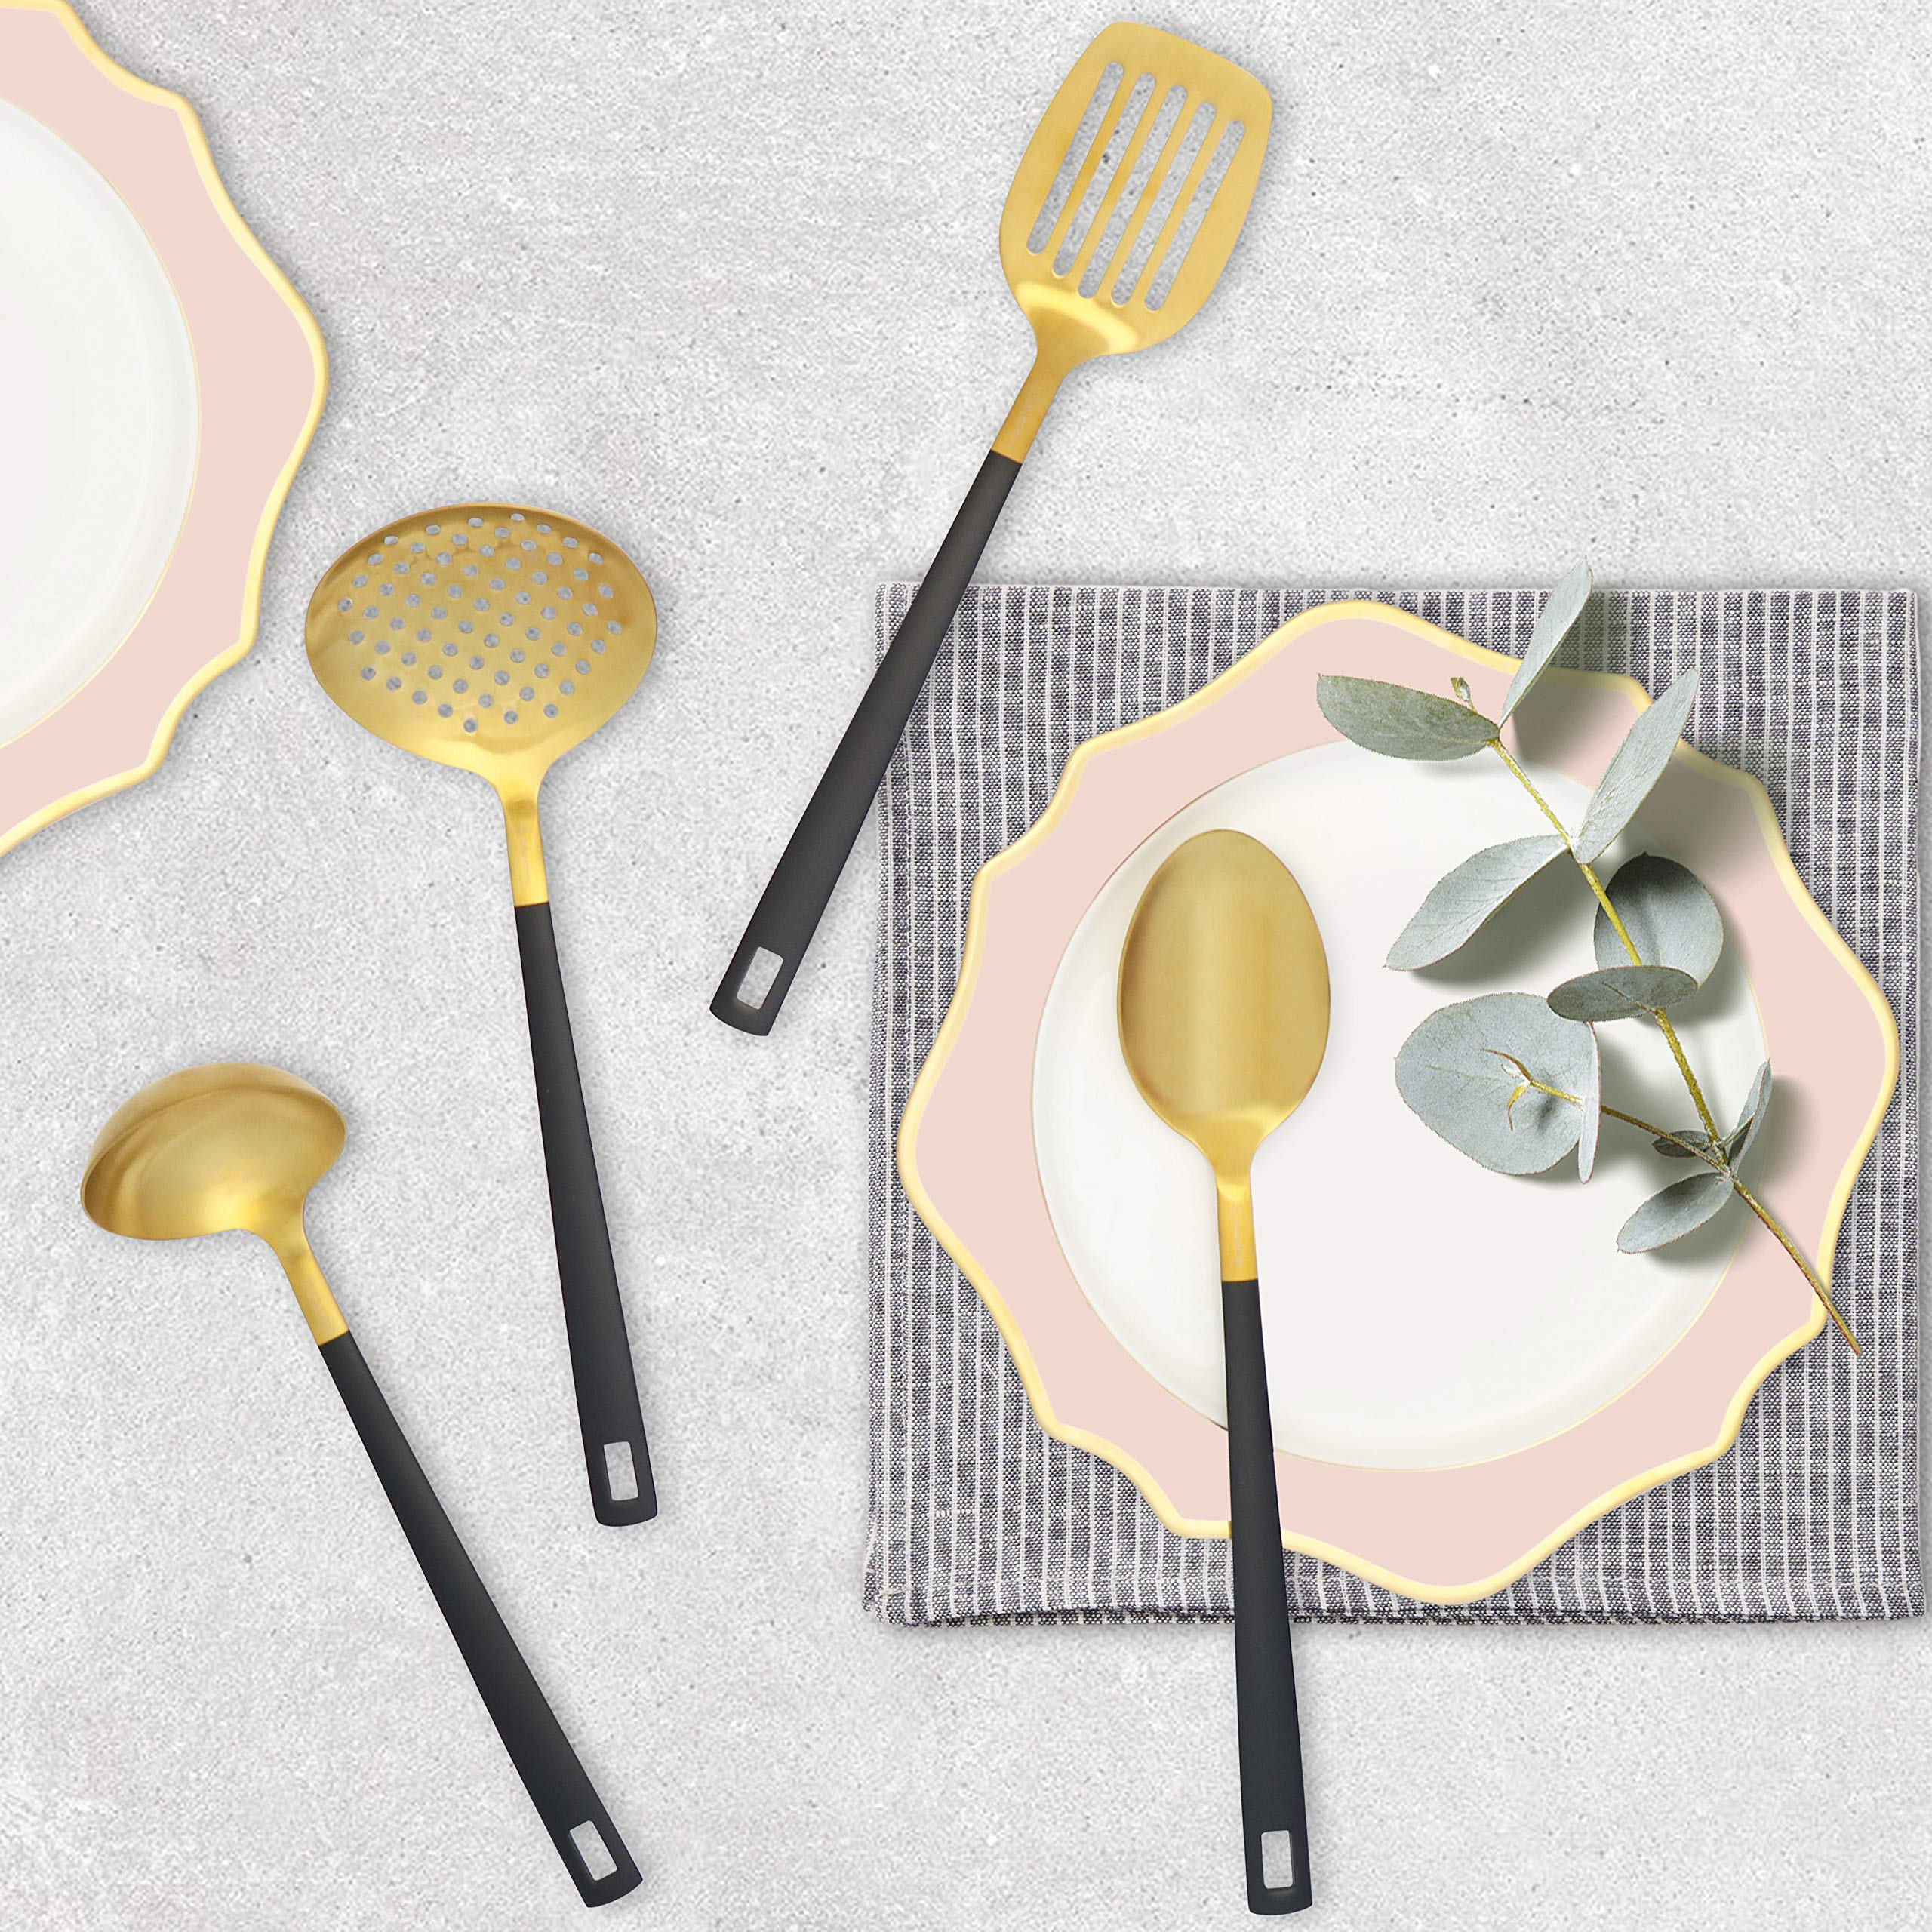 Black and Gold Utensil Set for Cooking and Serving, Stainless Steel Serving Utensils include - Black and Gold Metal Ladle, Skimmer, Serving Spoon, Turner: Gold Serving Sets by STYLED SETTINGS (Image #2)